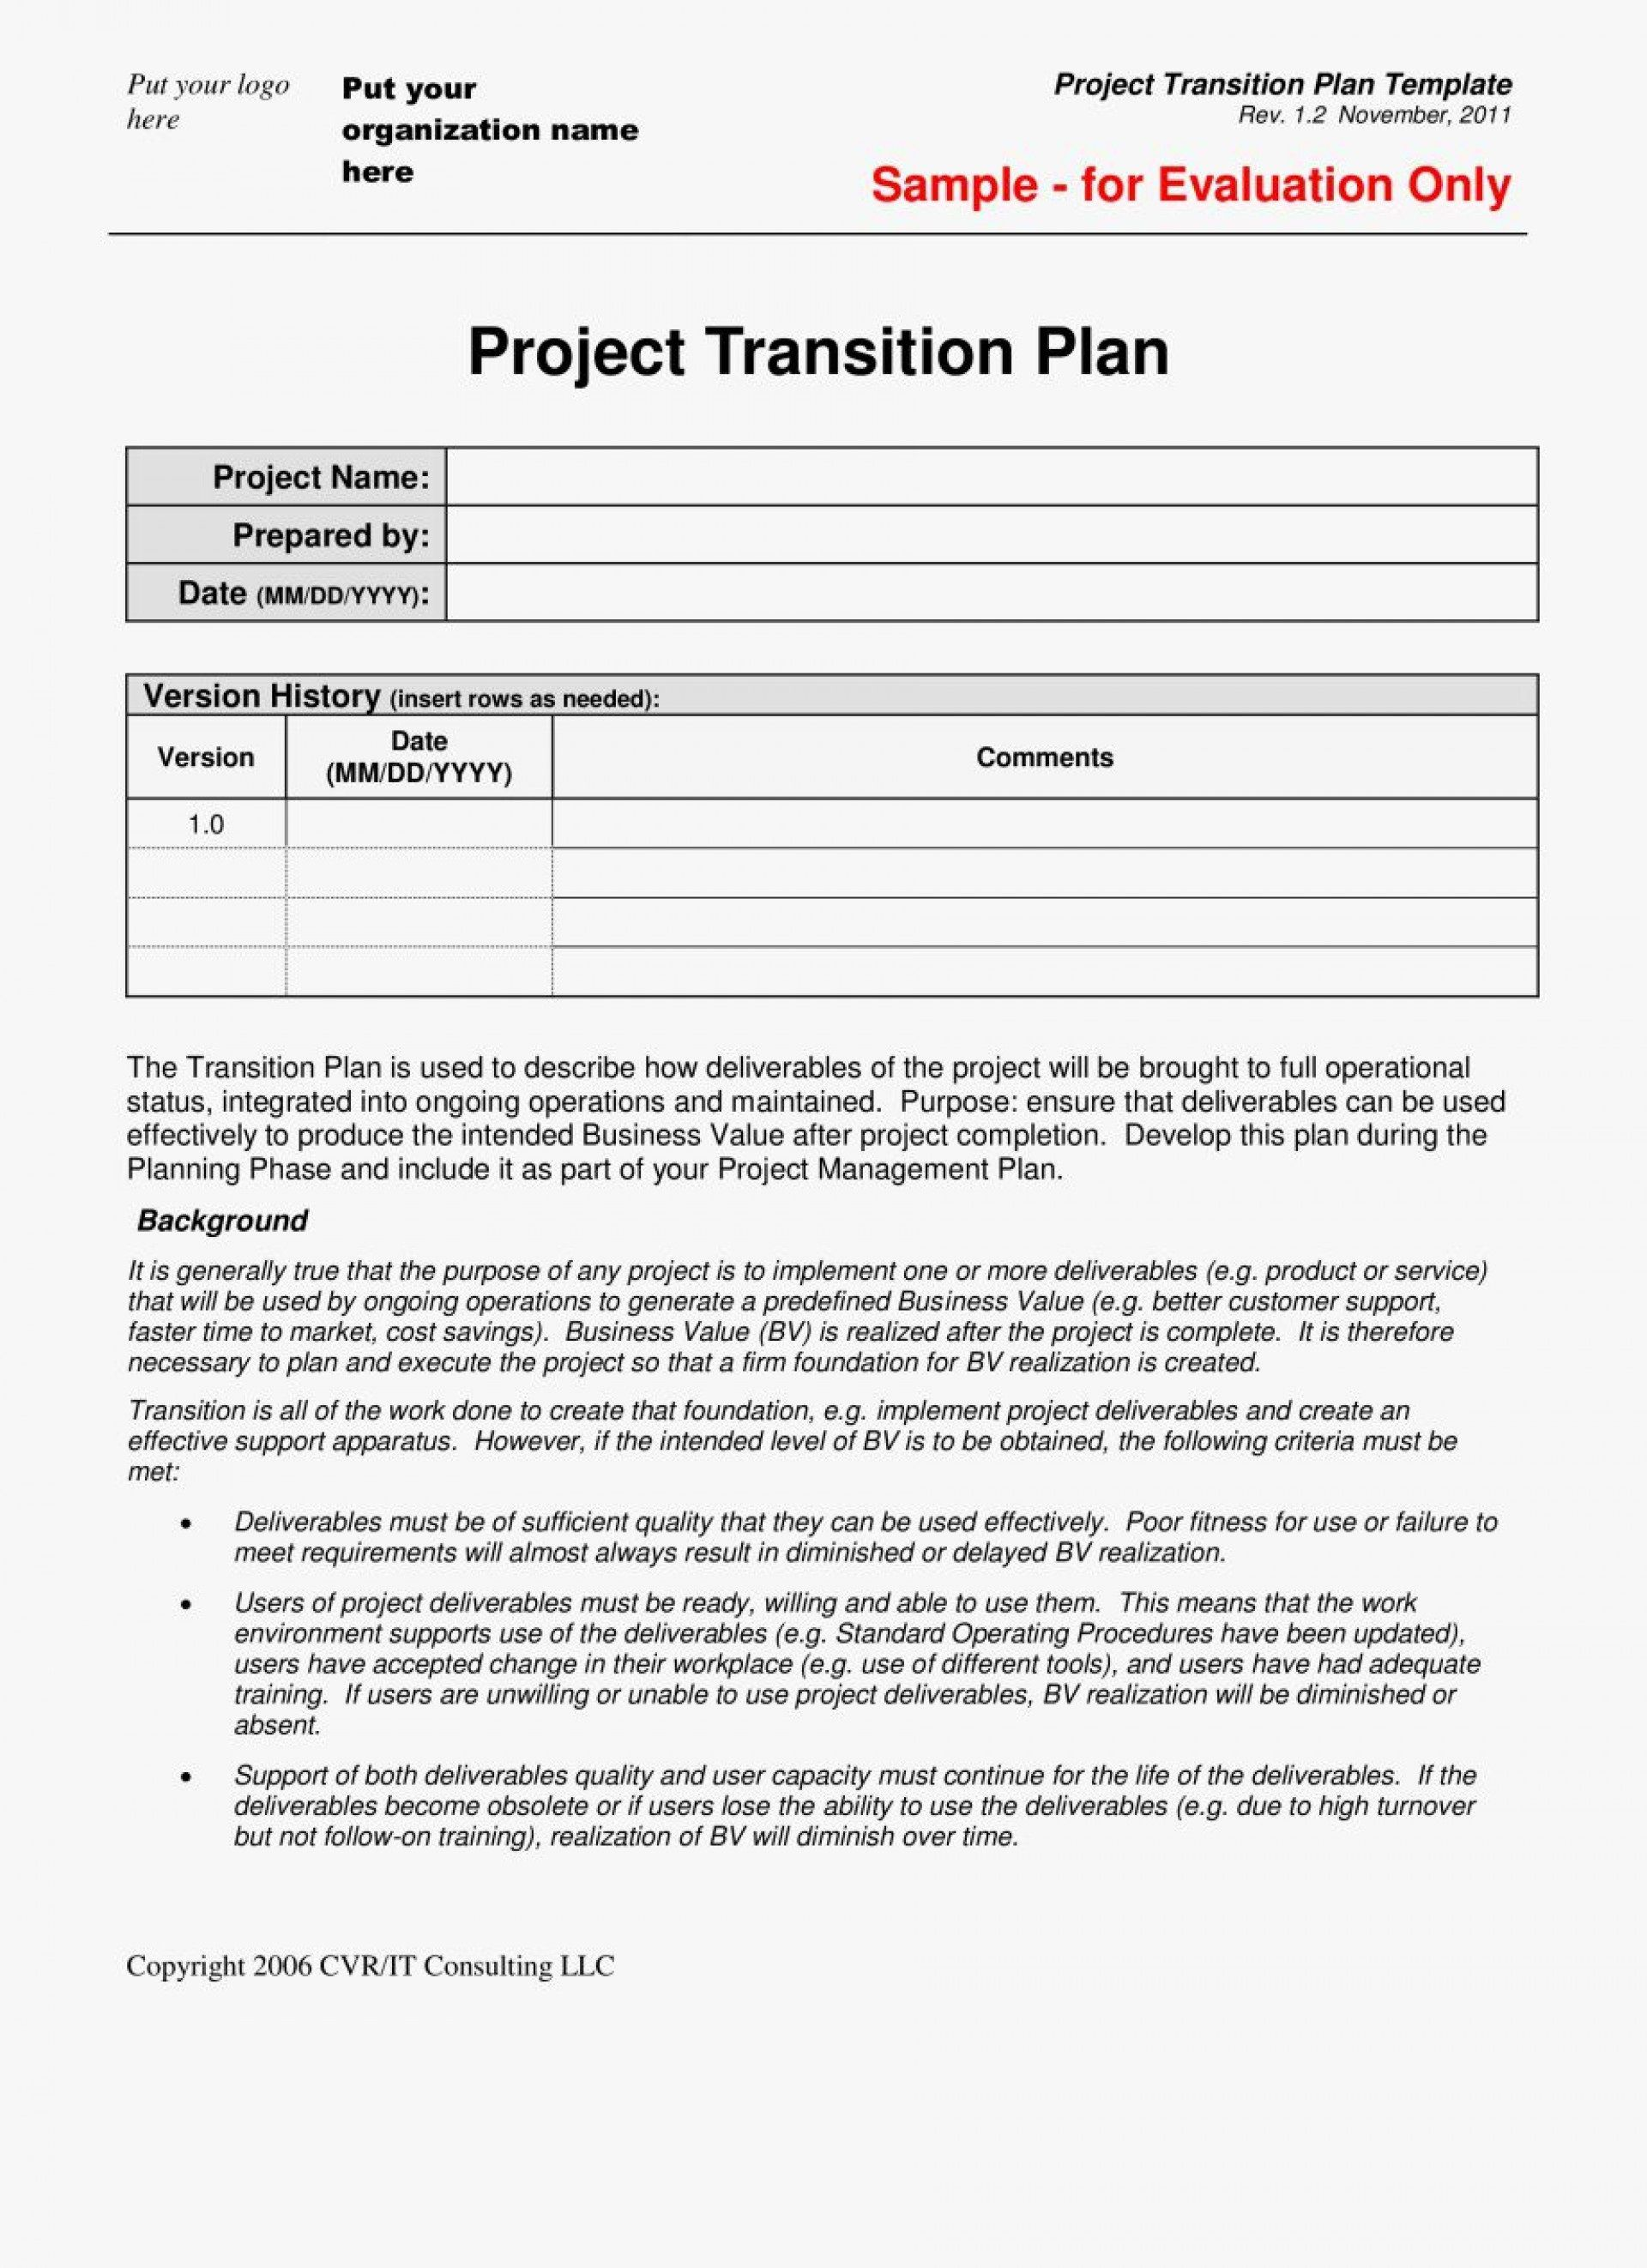 009 Stunning Project Transition Plan Sample High Def  Template Ppt OutFull